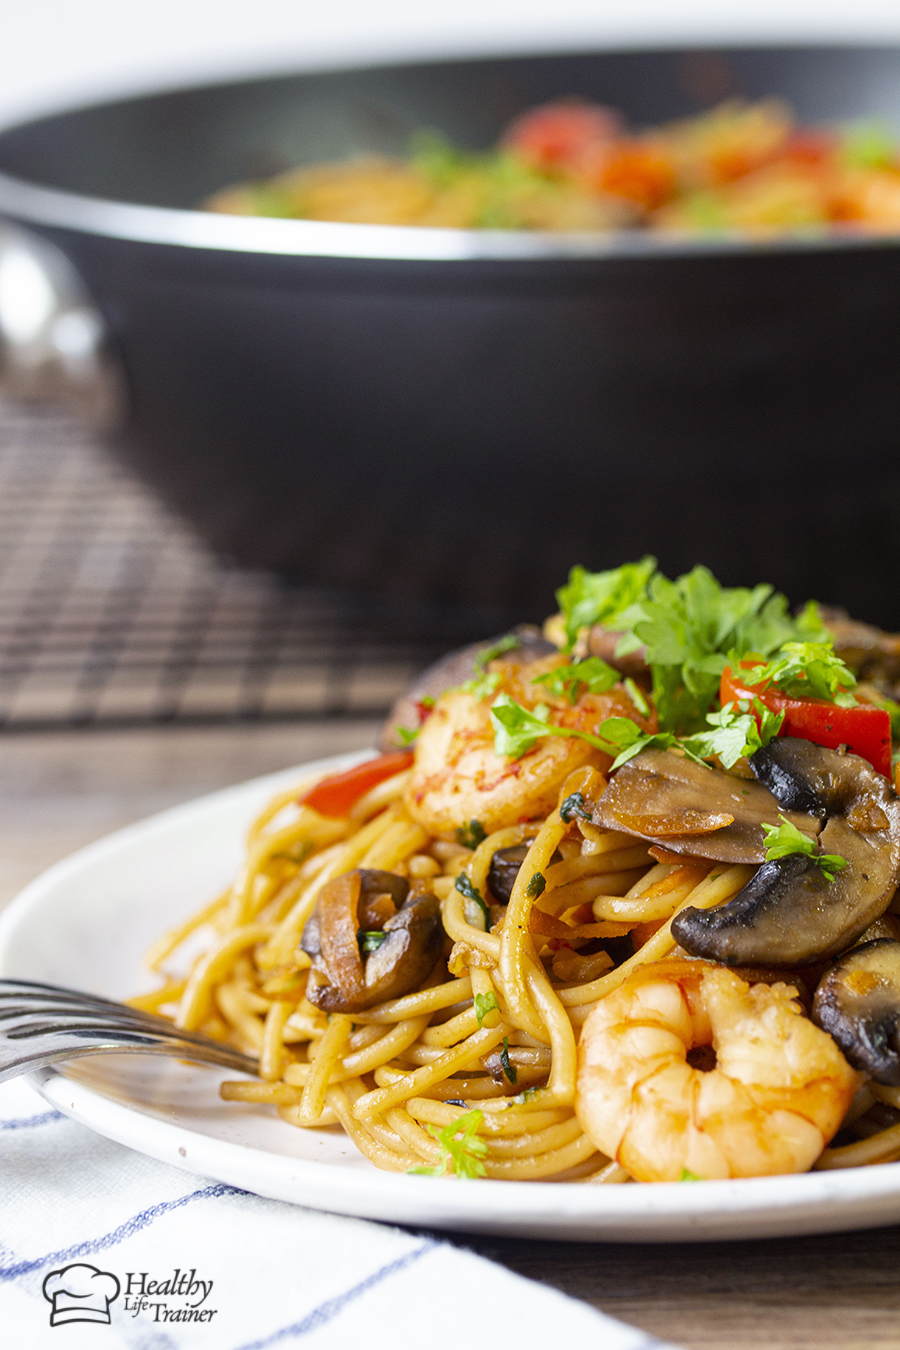 Chinese style shrimp pasta cooked in a flavourful sauce. This sauce has fresh ginger, sesame oil, garlic, soy sauce and brown sugar.